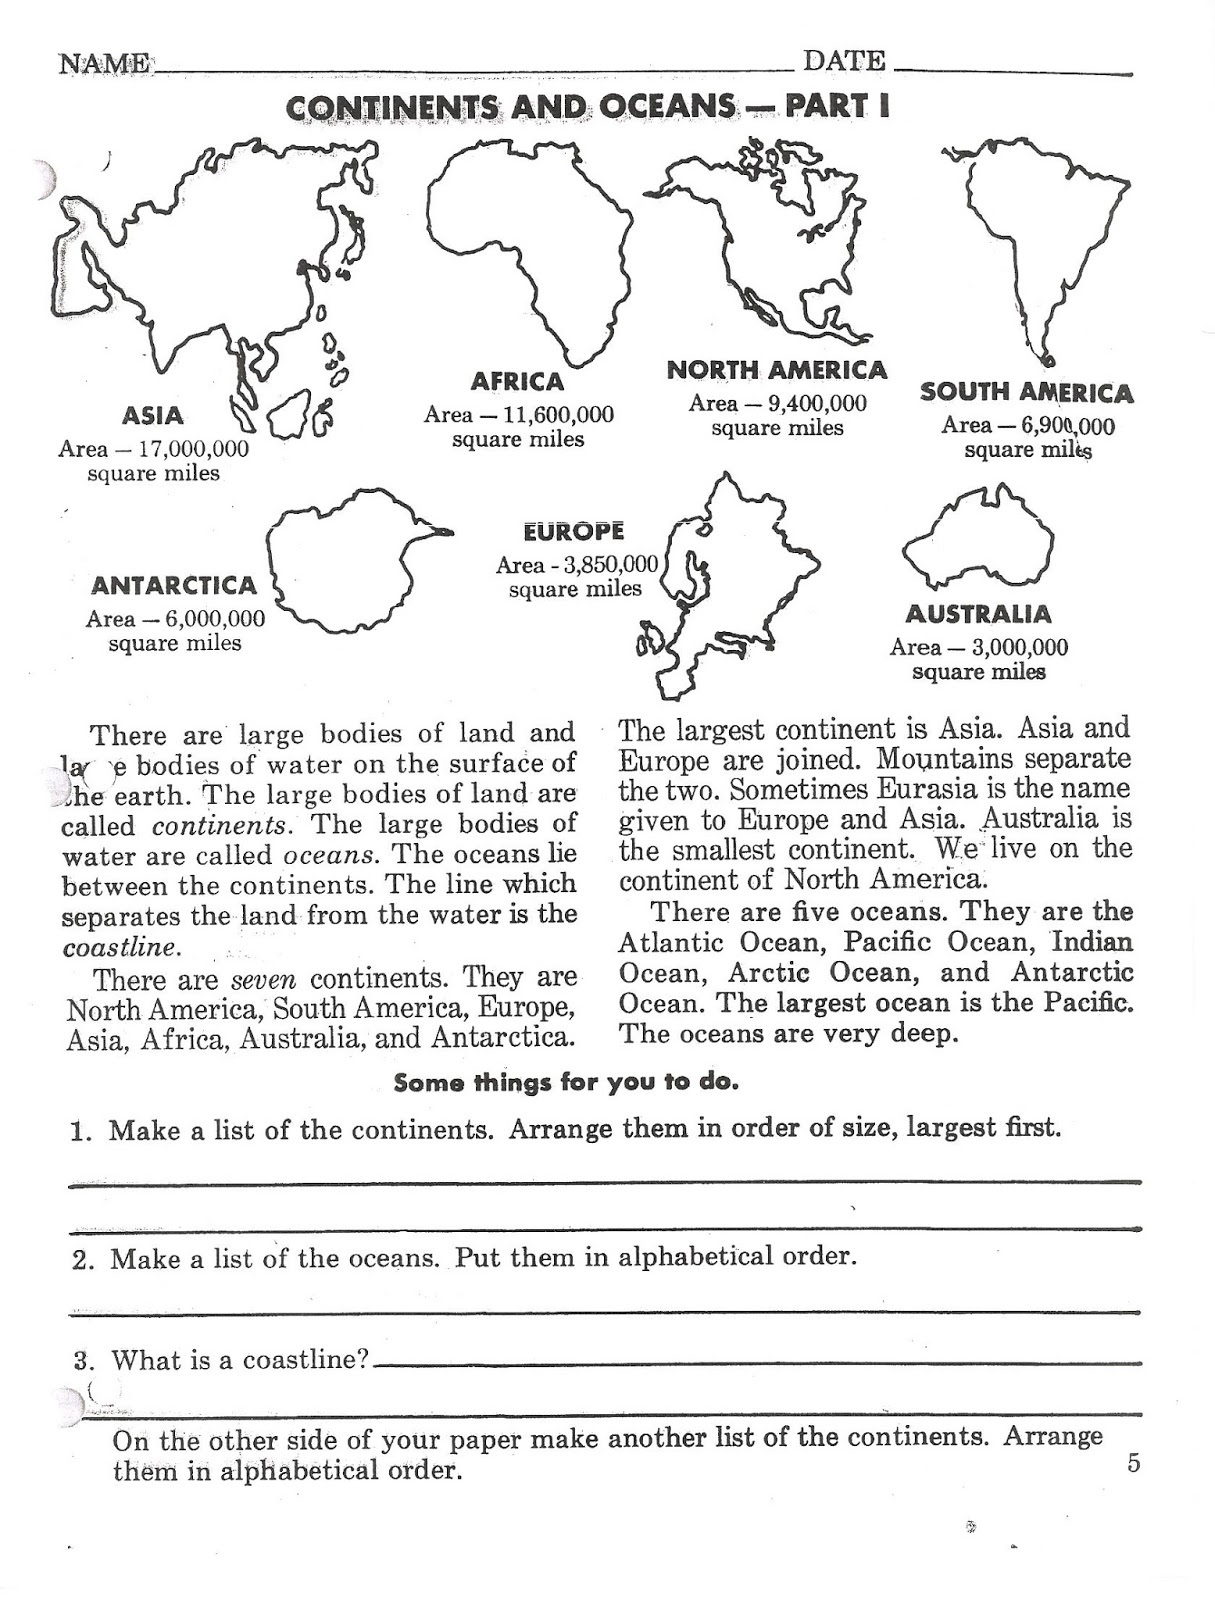 worksheet Continents And Oceans For Kids Worksheets oceans and continents worksheet free worksheets library download mr st nt